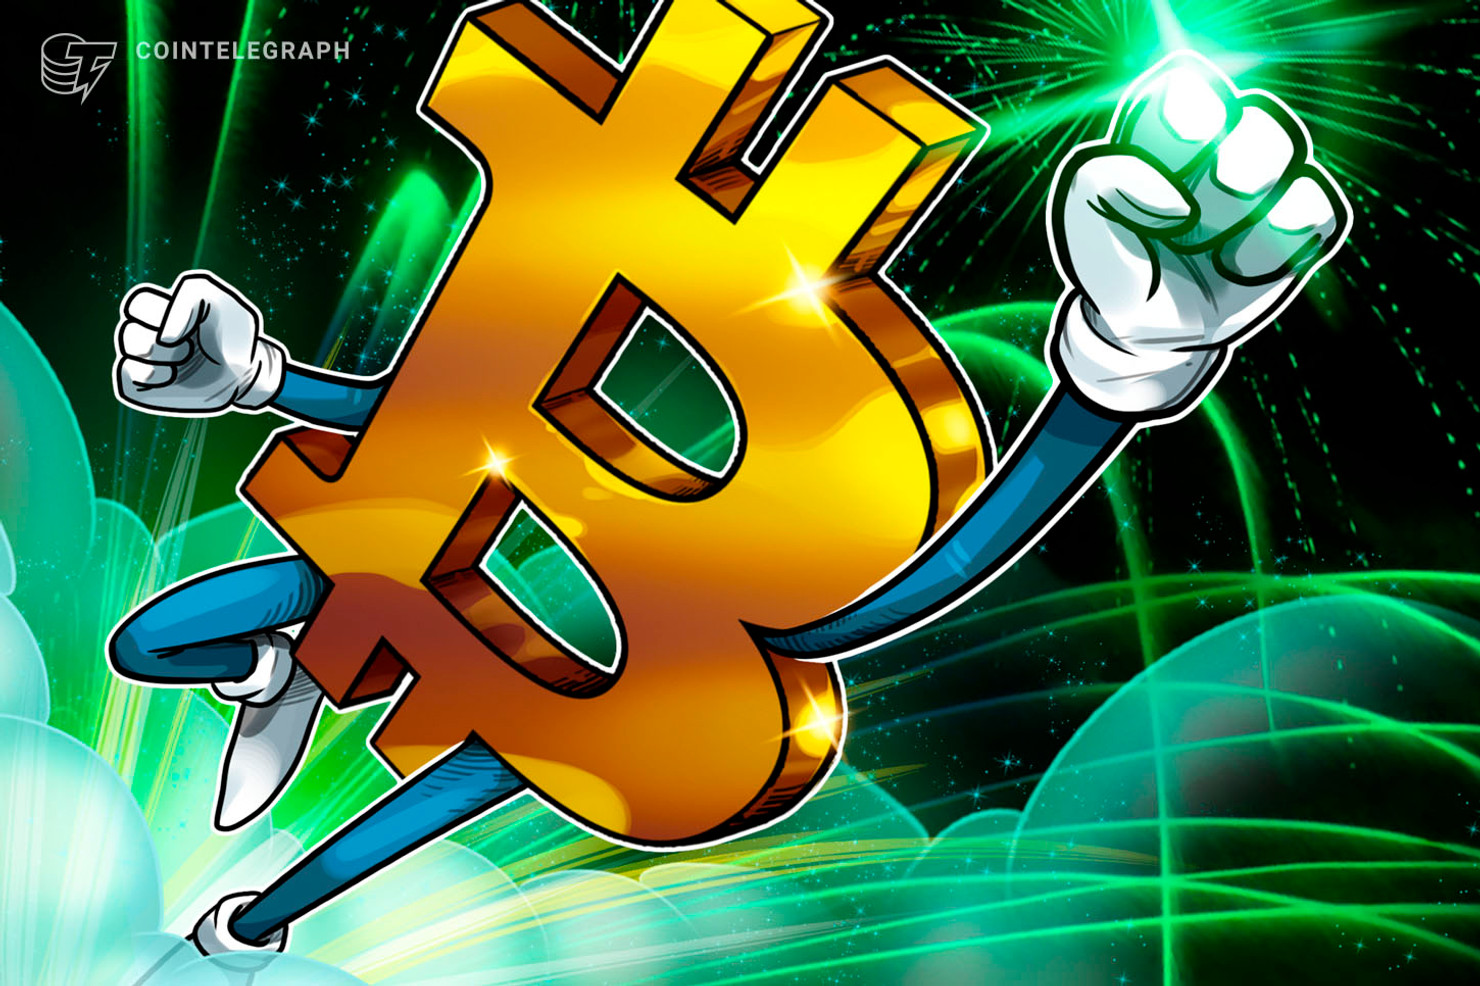 Bitcoin Price Bounces Above $5K as Analyst Forecasts a 'Squeeze Up'